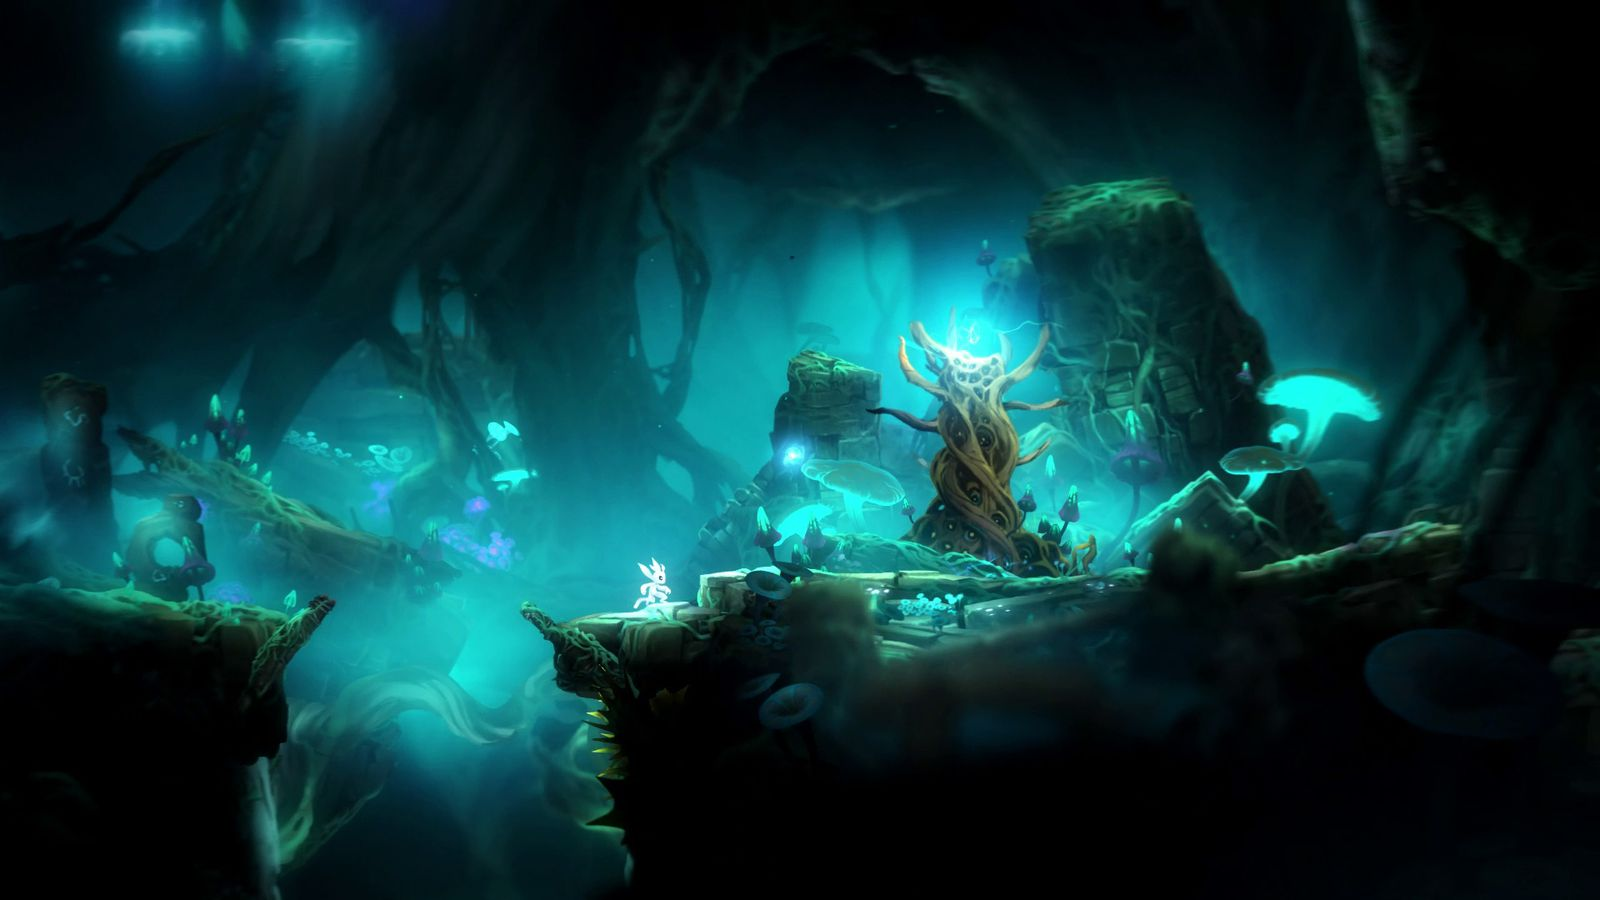 e3-2017-microsoft-nos-muestra-ori-and-the-will-of-the-wisps-frikigamers.com